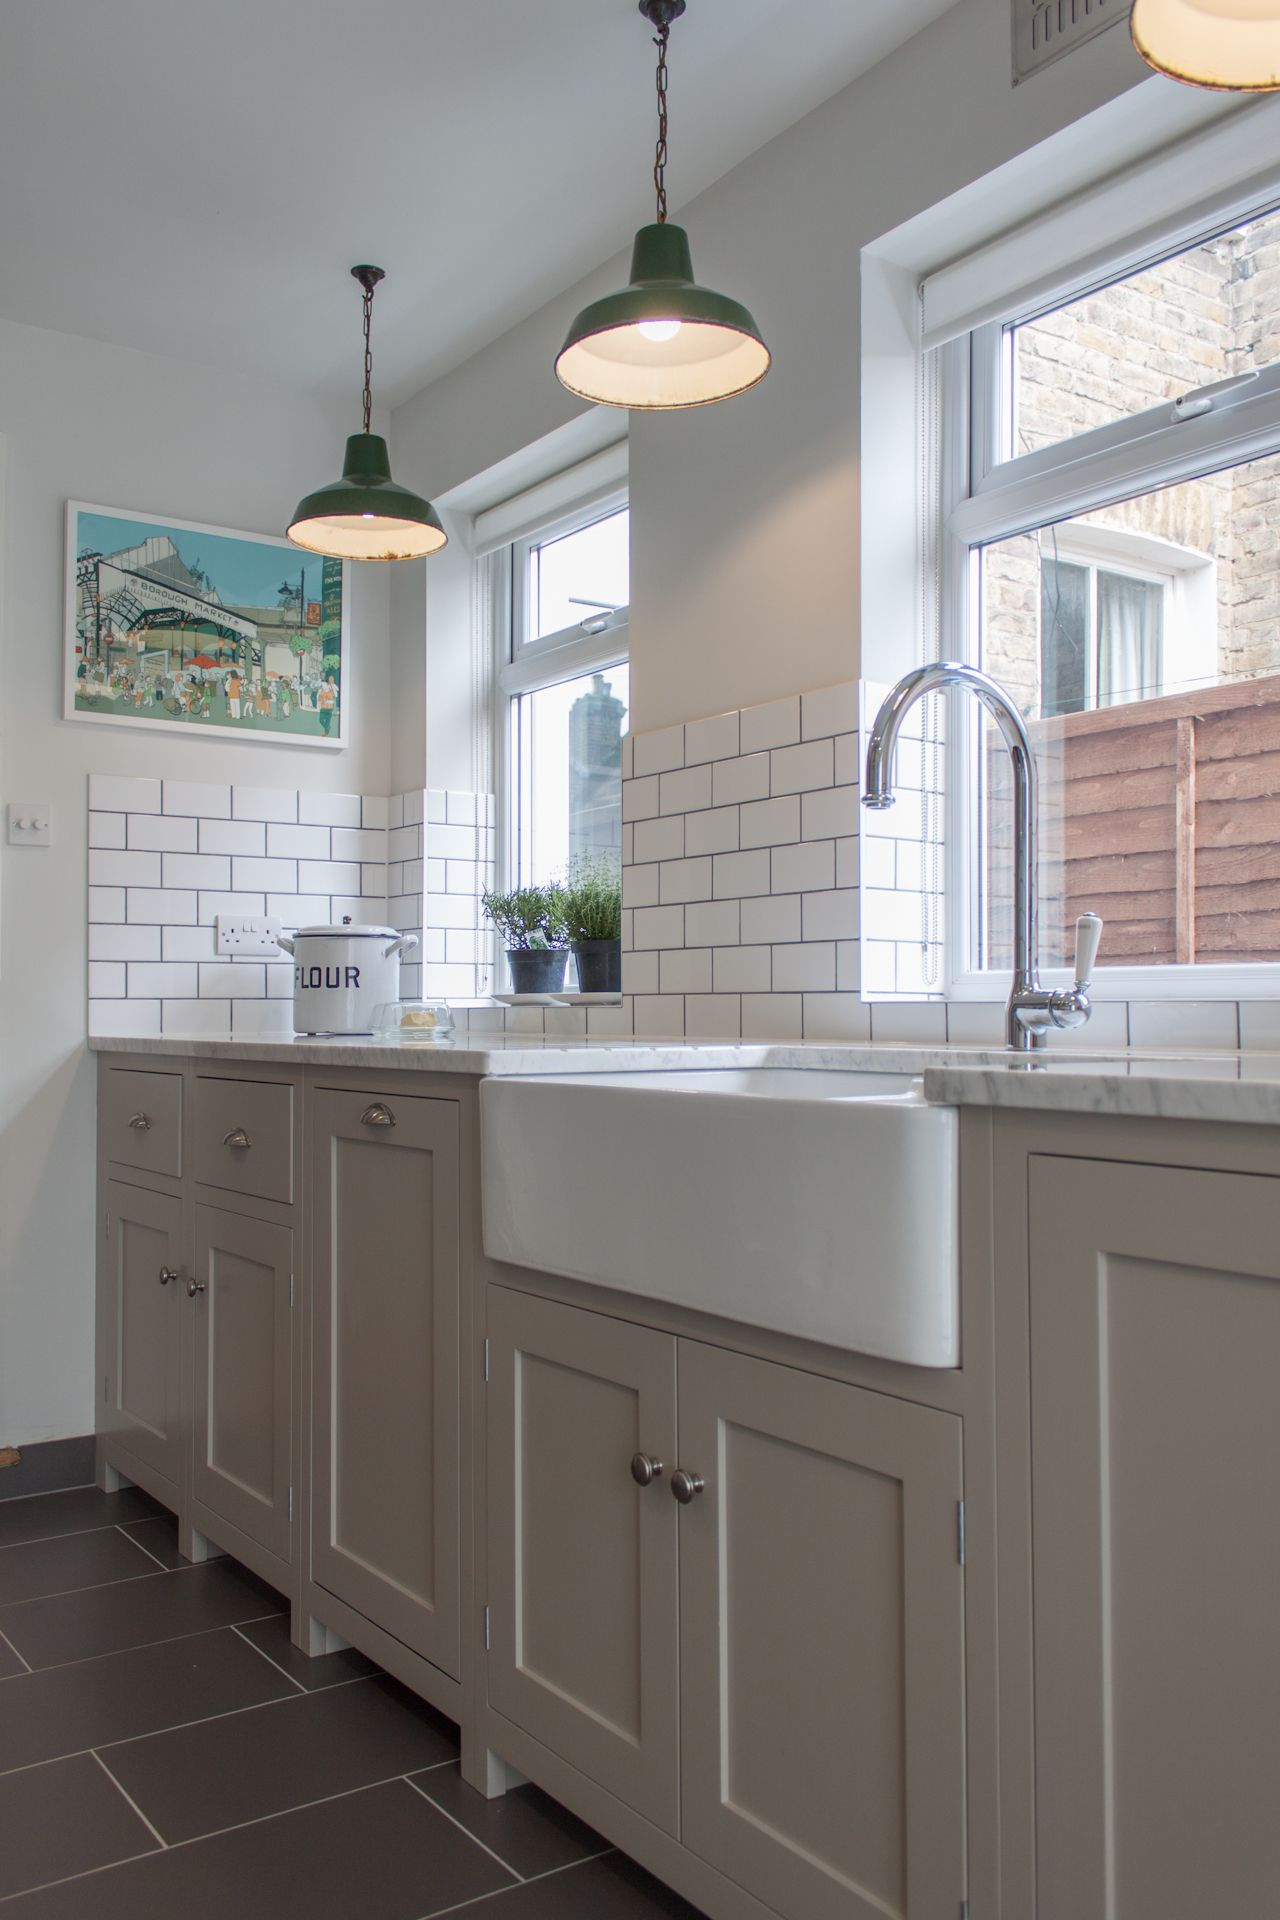 Trendy Pendant Lamps Over Cool White Single Farmhouse Sink And